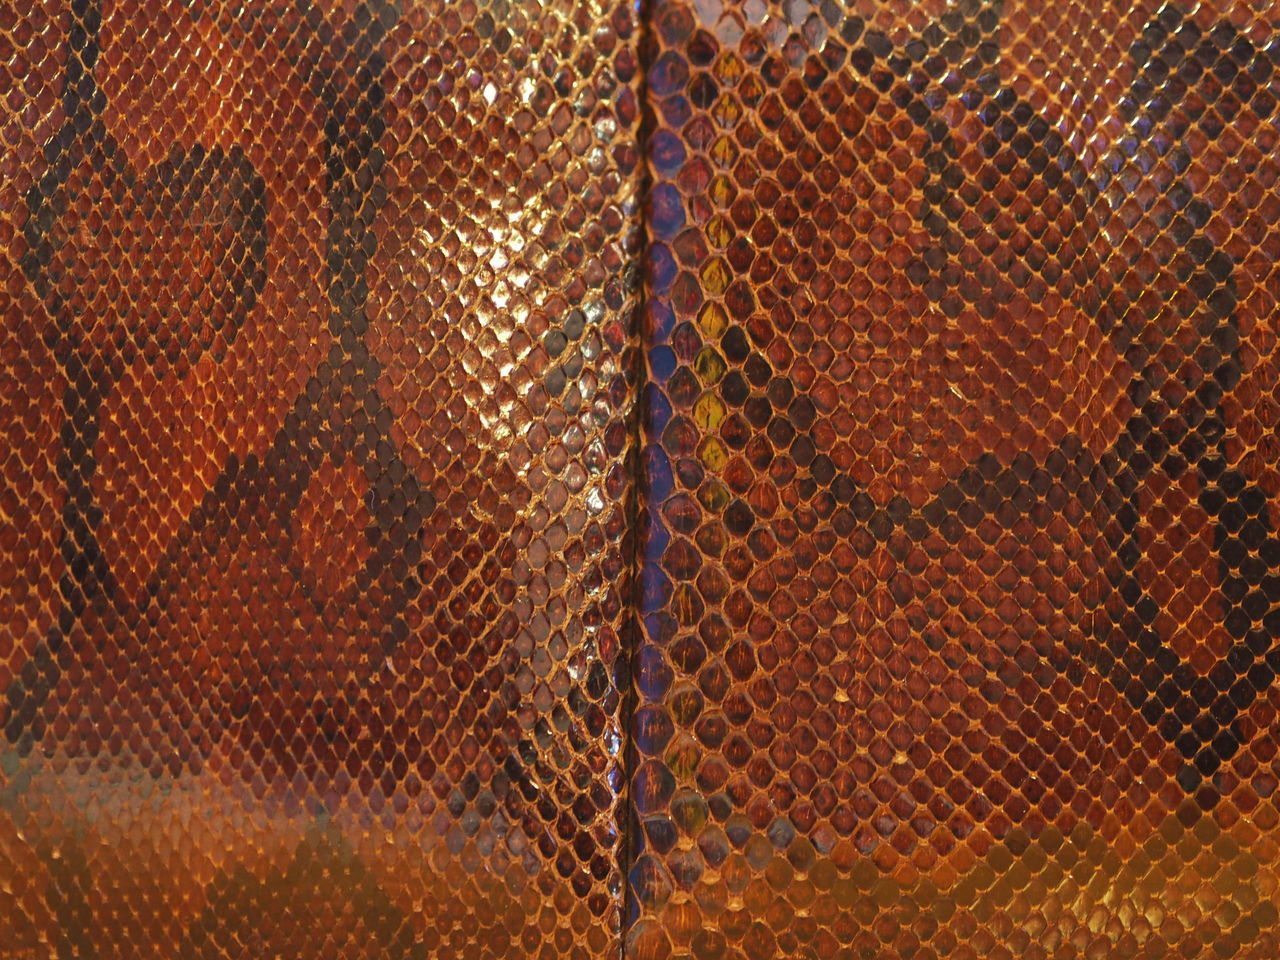 backgrounds, full frame, textured, metal, pattern, brown, close-up, no people, day, indoors